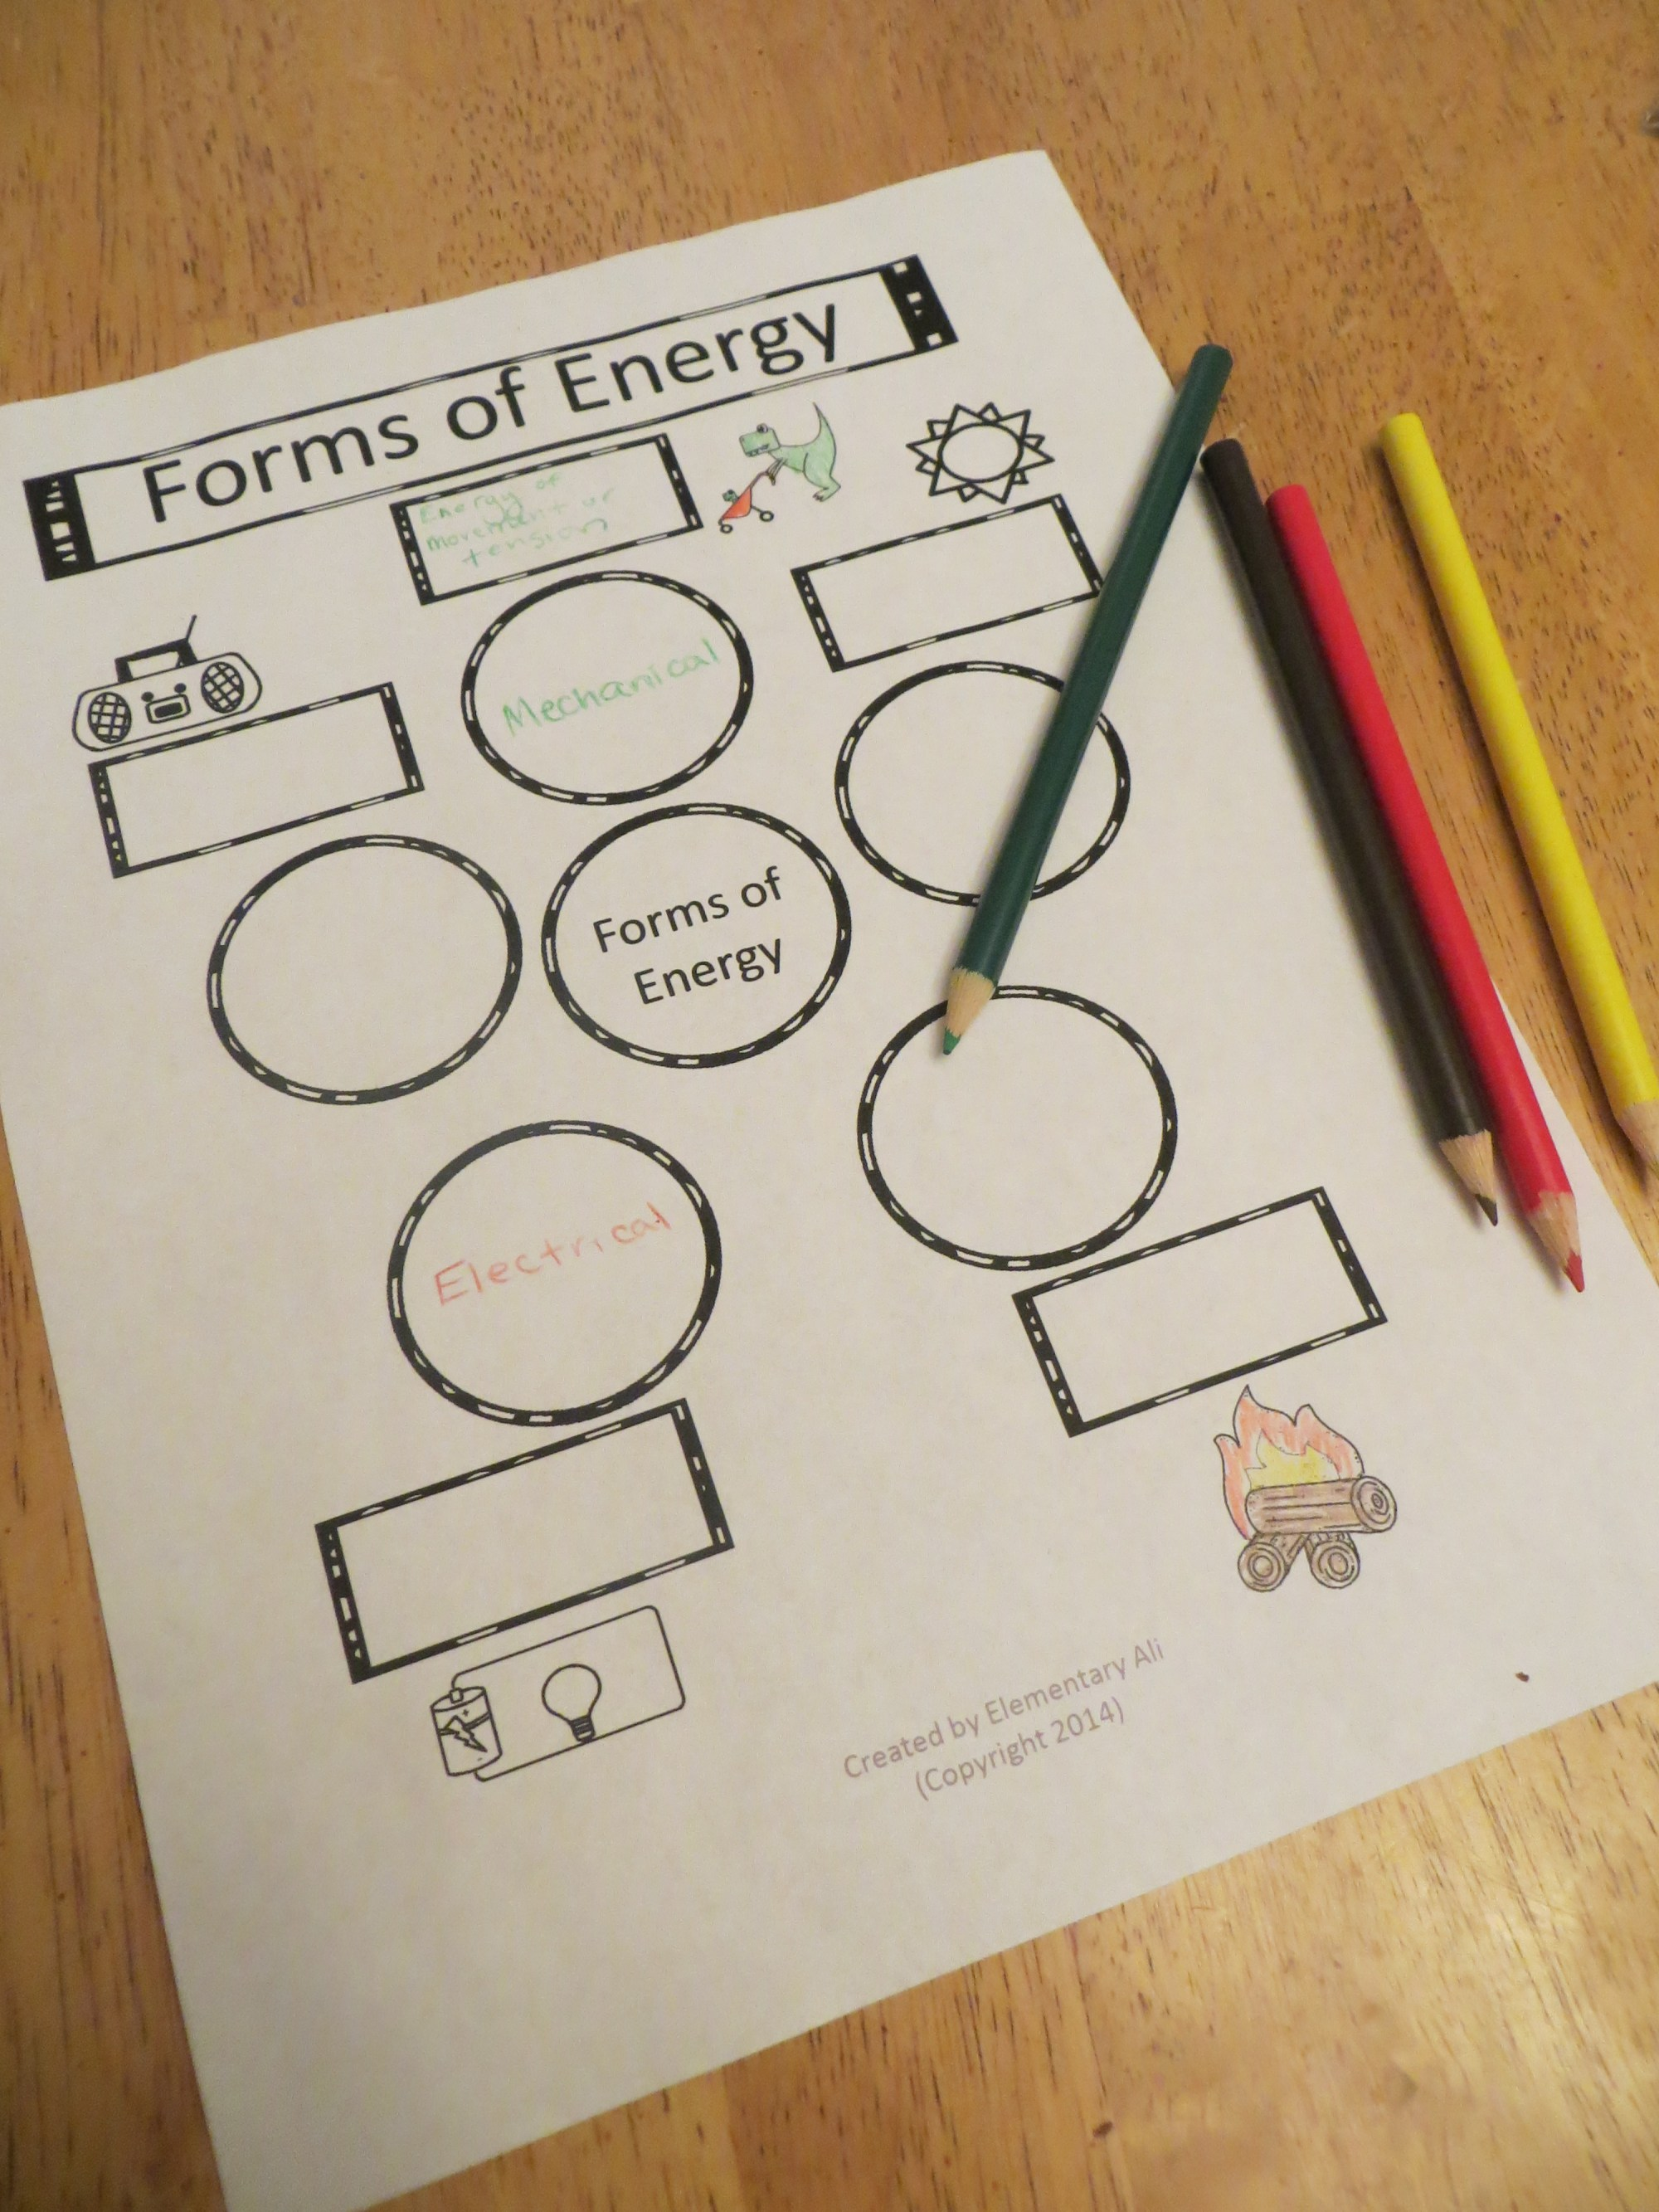 hight resolution of forms of energy anchor chart - Yerse